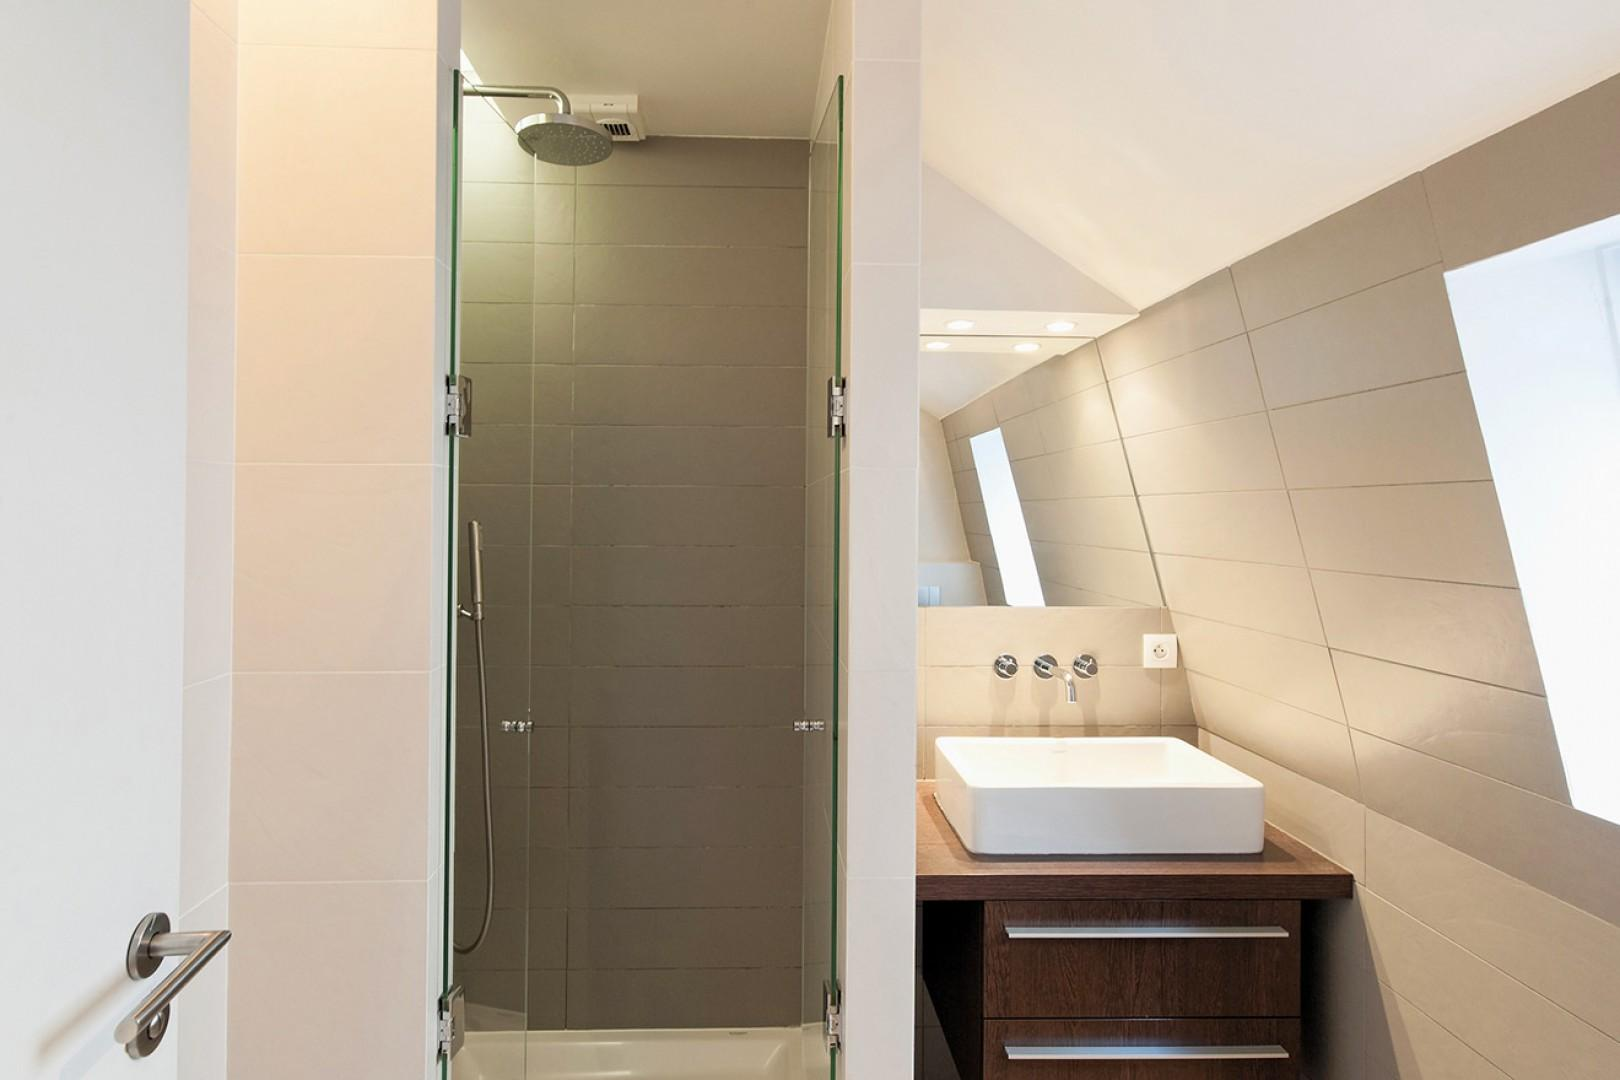 The bathroom is equipped with a shower, sink and toilet.